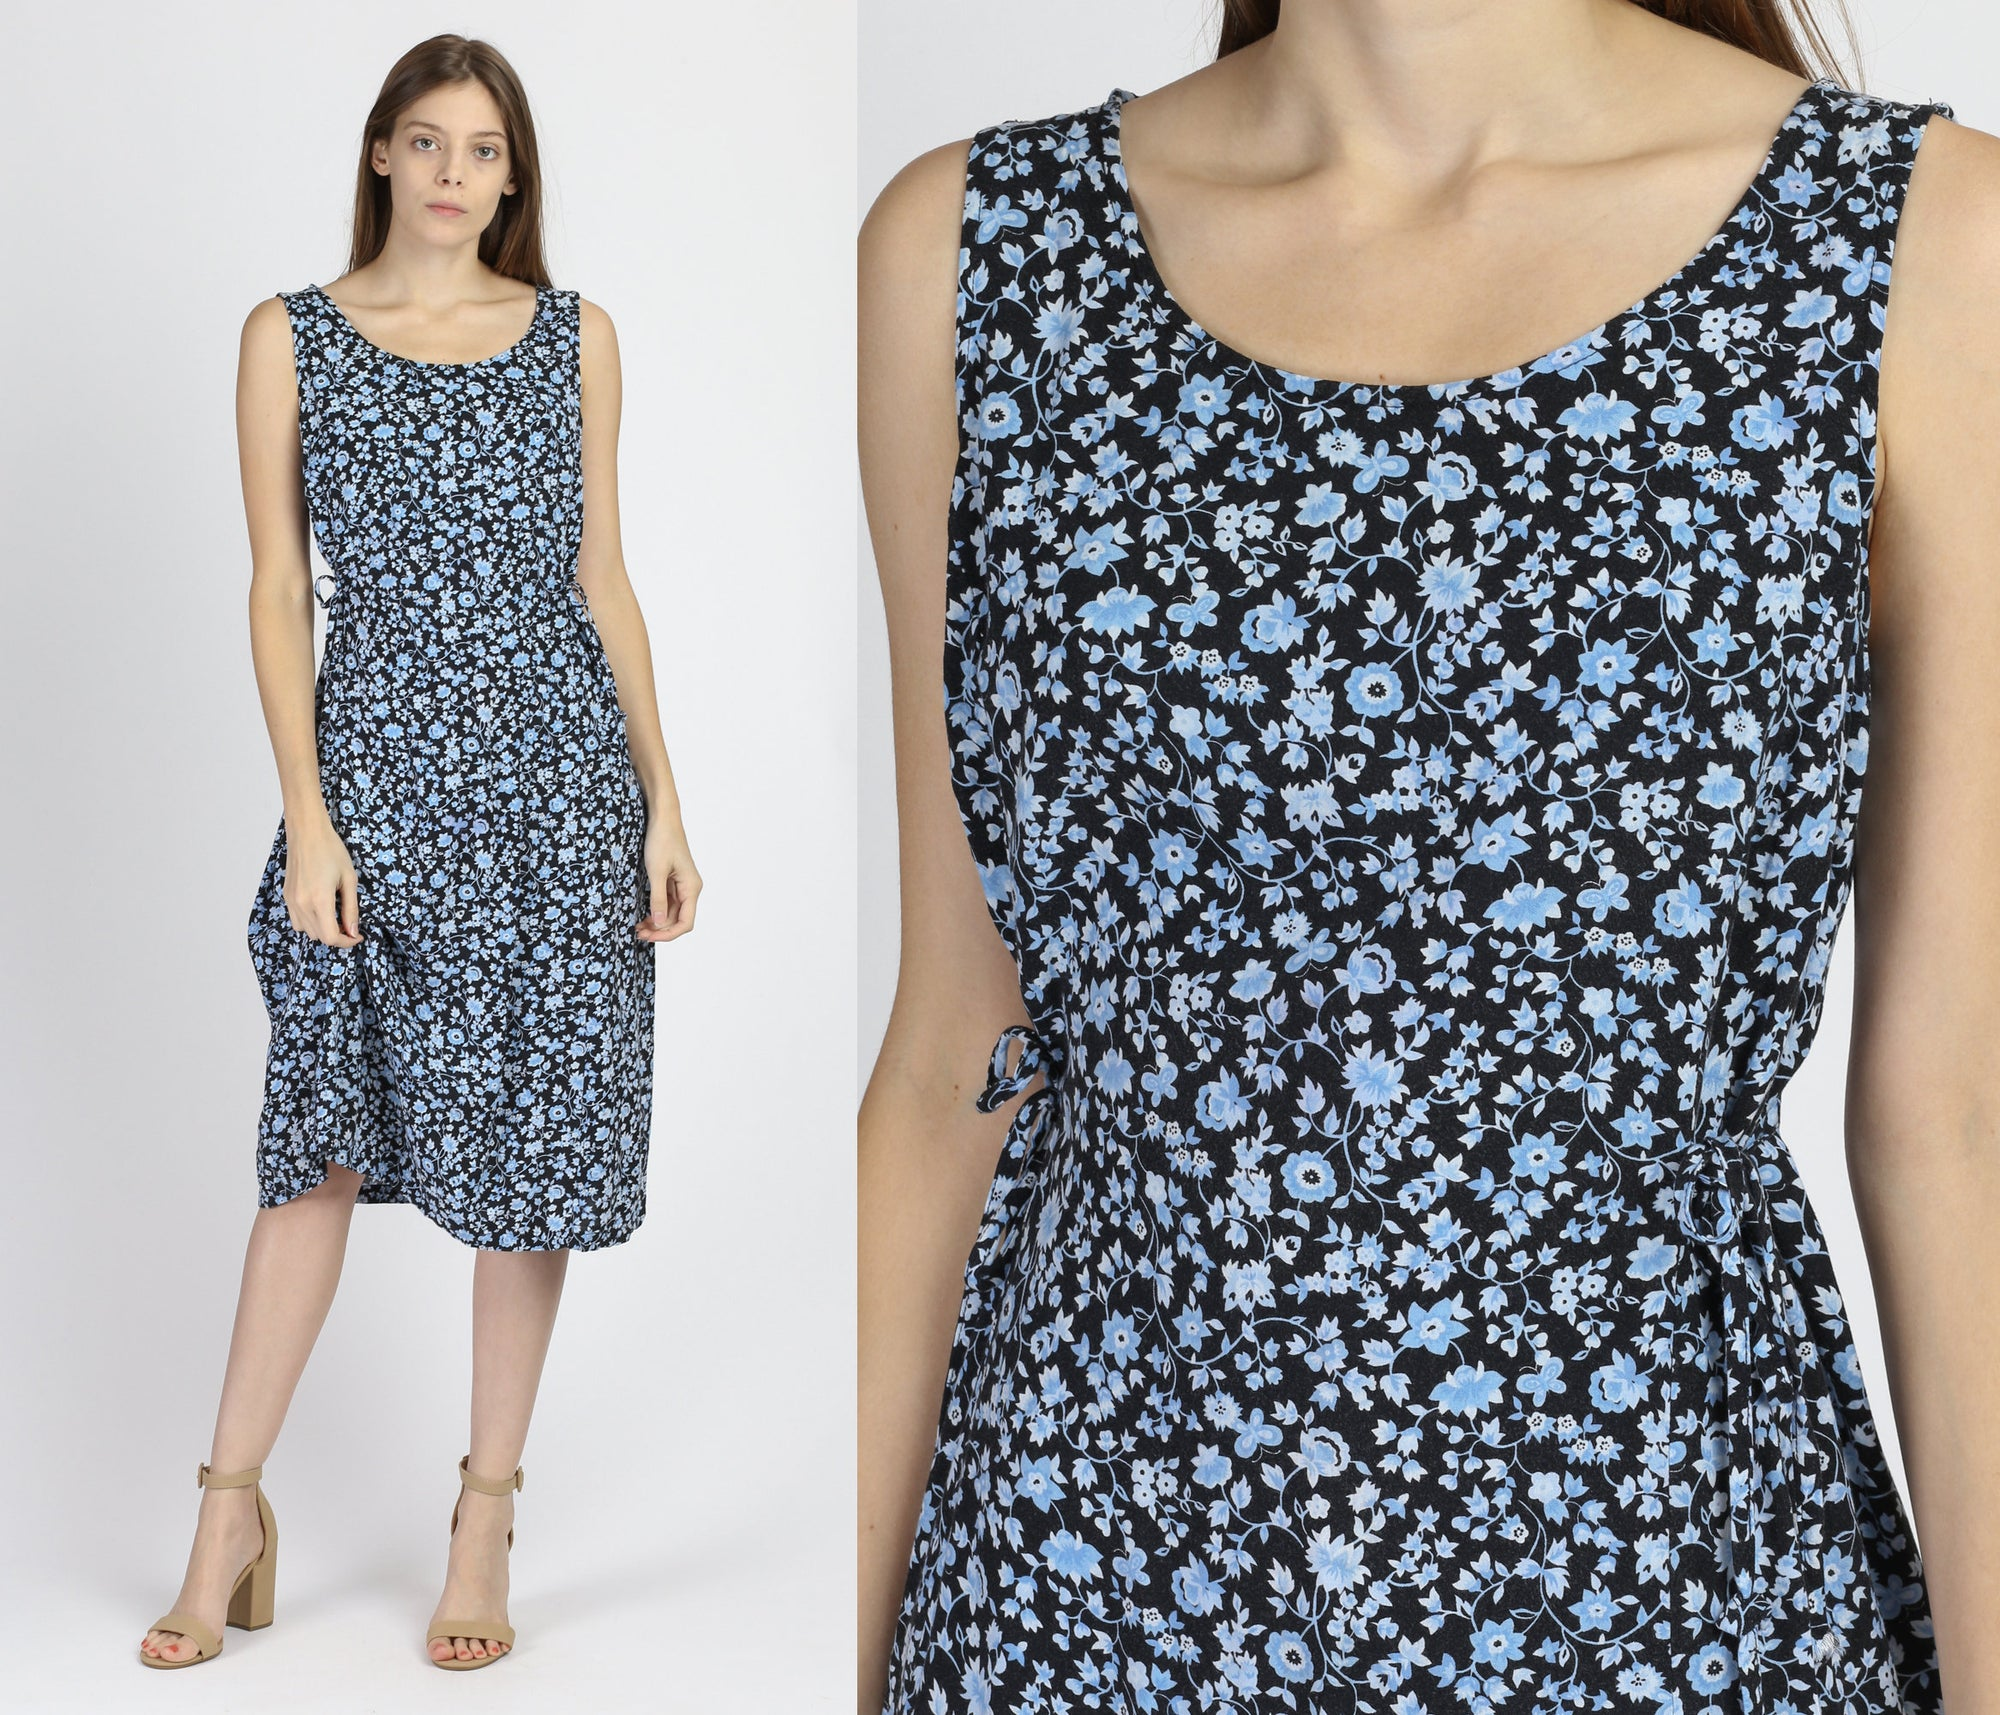 90s Grunge Blue Floral Side Tie Midi Dress - Large